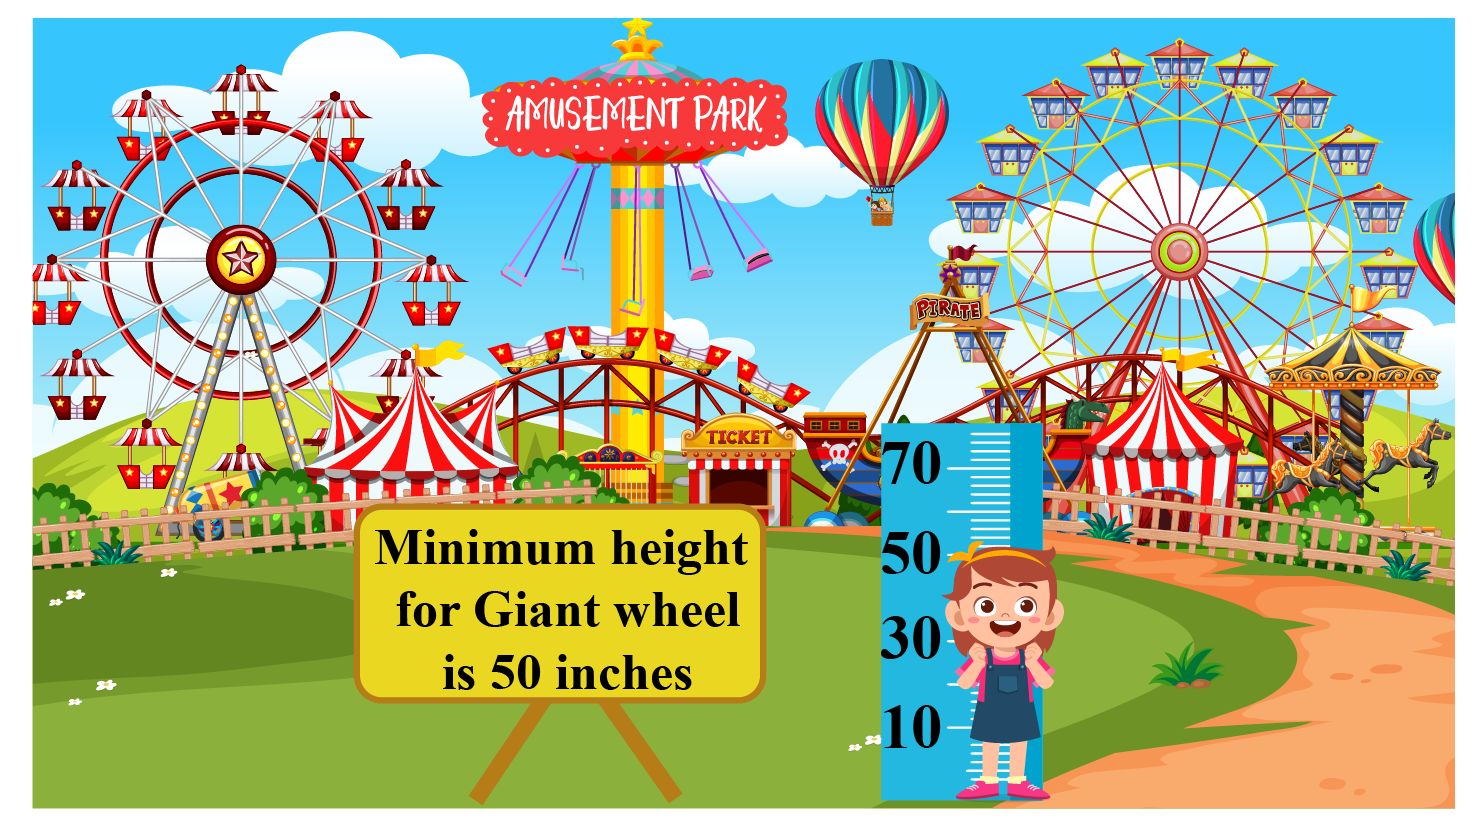 Greater than or equal to real-life example: The instructions on a board at the entrance of a giant wheel at an amusement park mention that the person riding it should be minimum 50 inches tall.